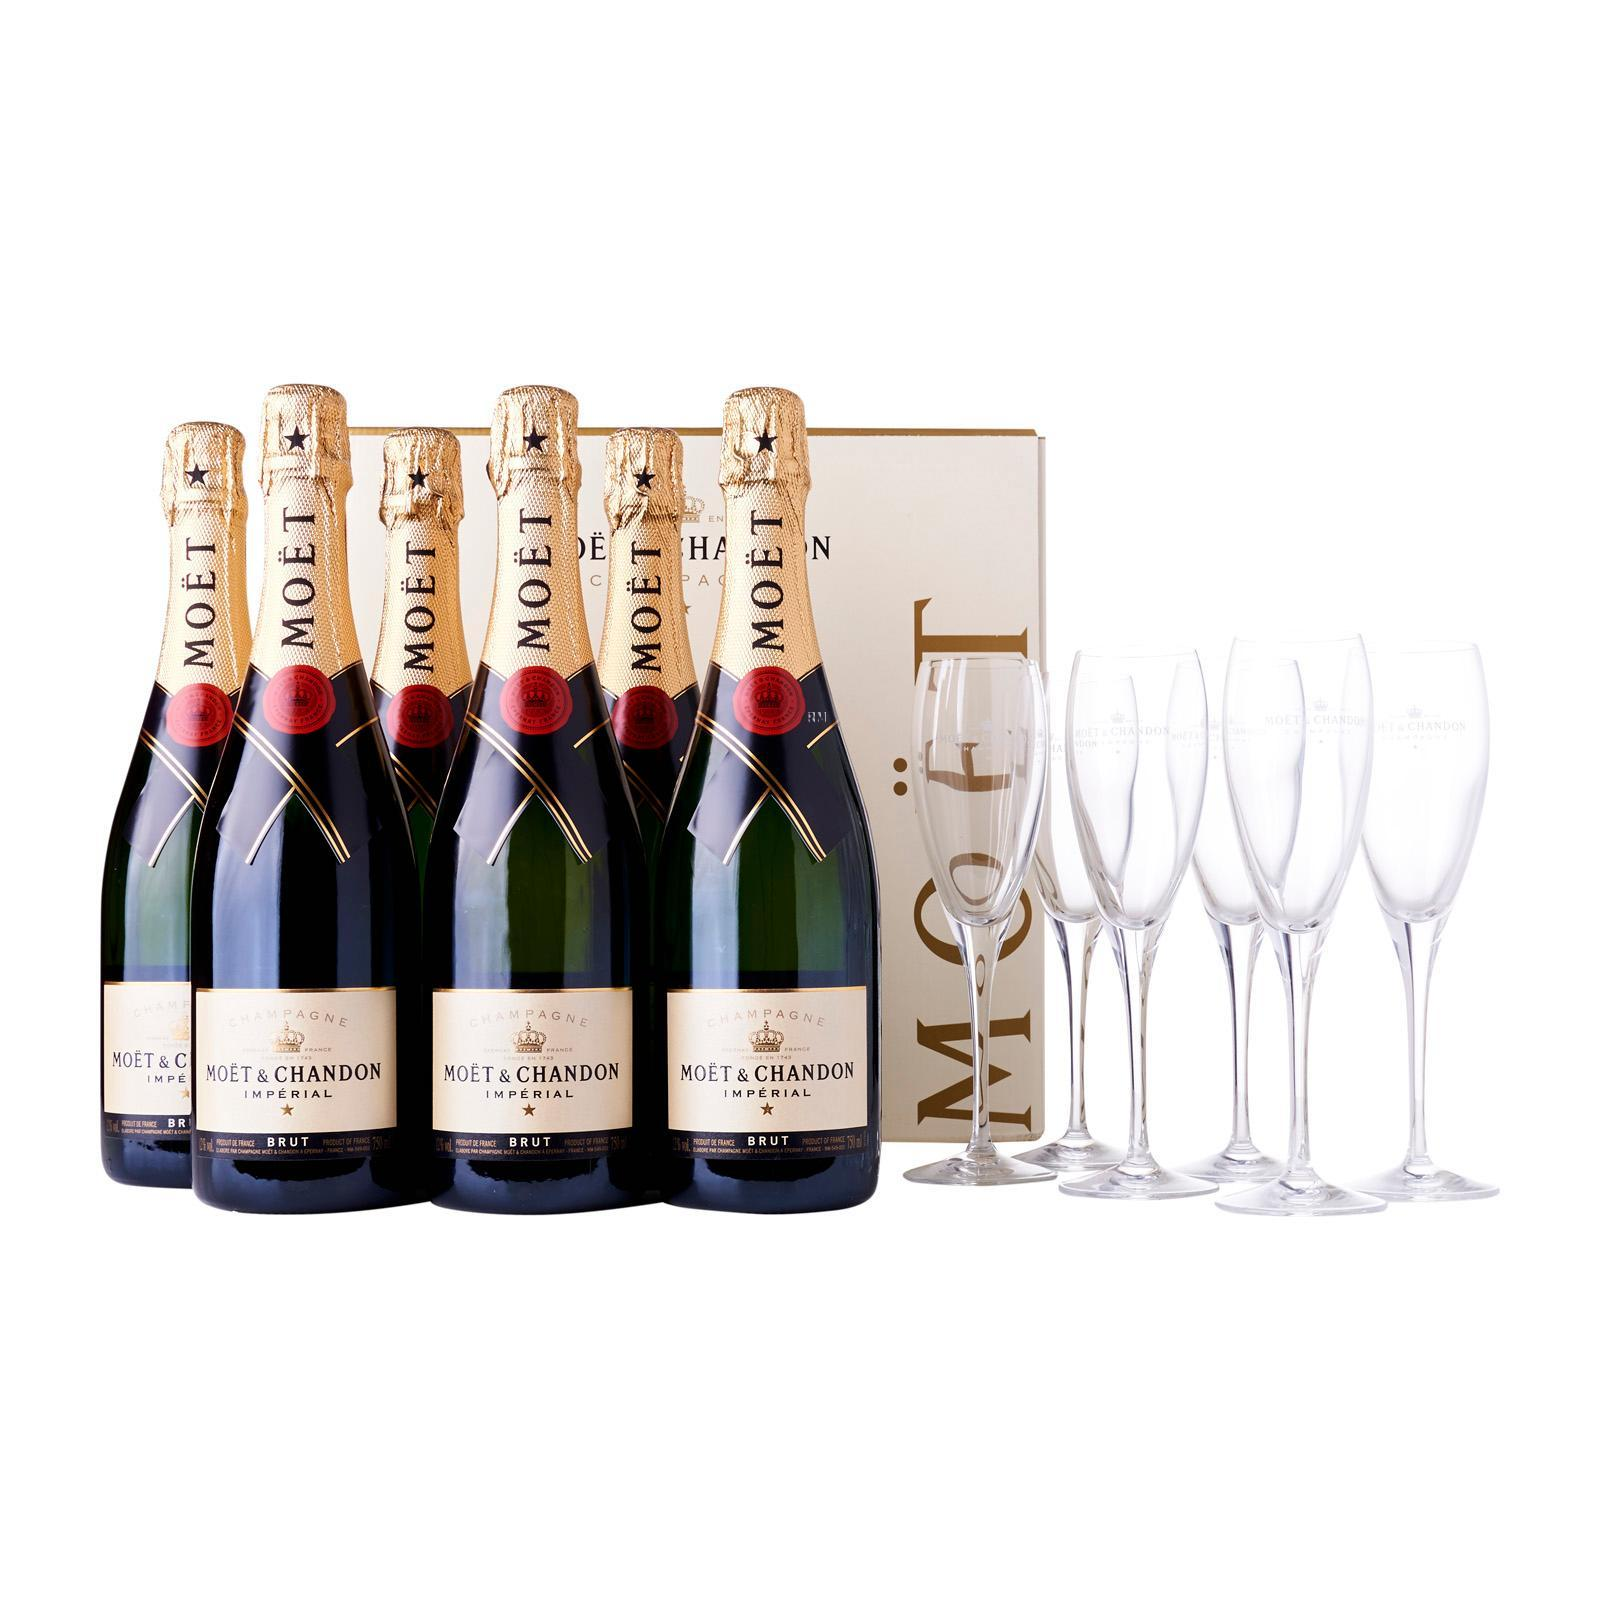 Moet & Chandon Brut Imperial Champagne - Case + 6 Free Glasses